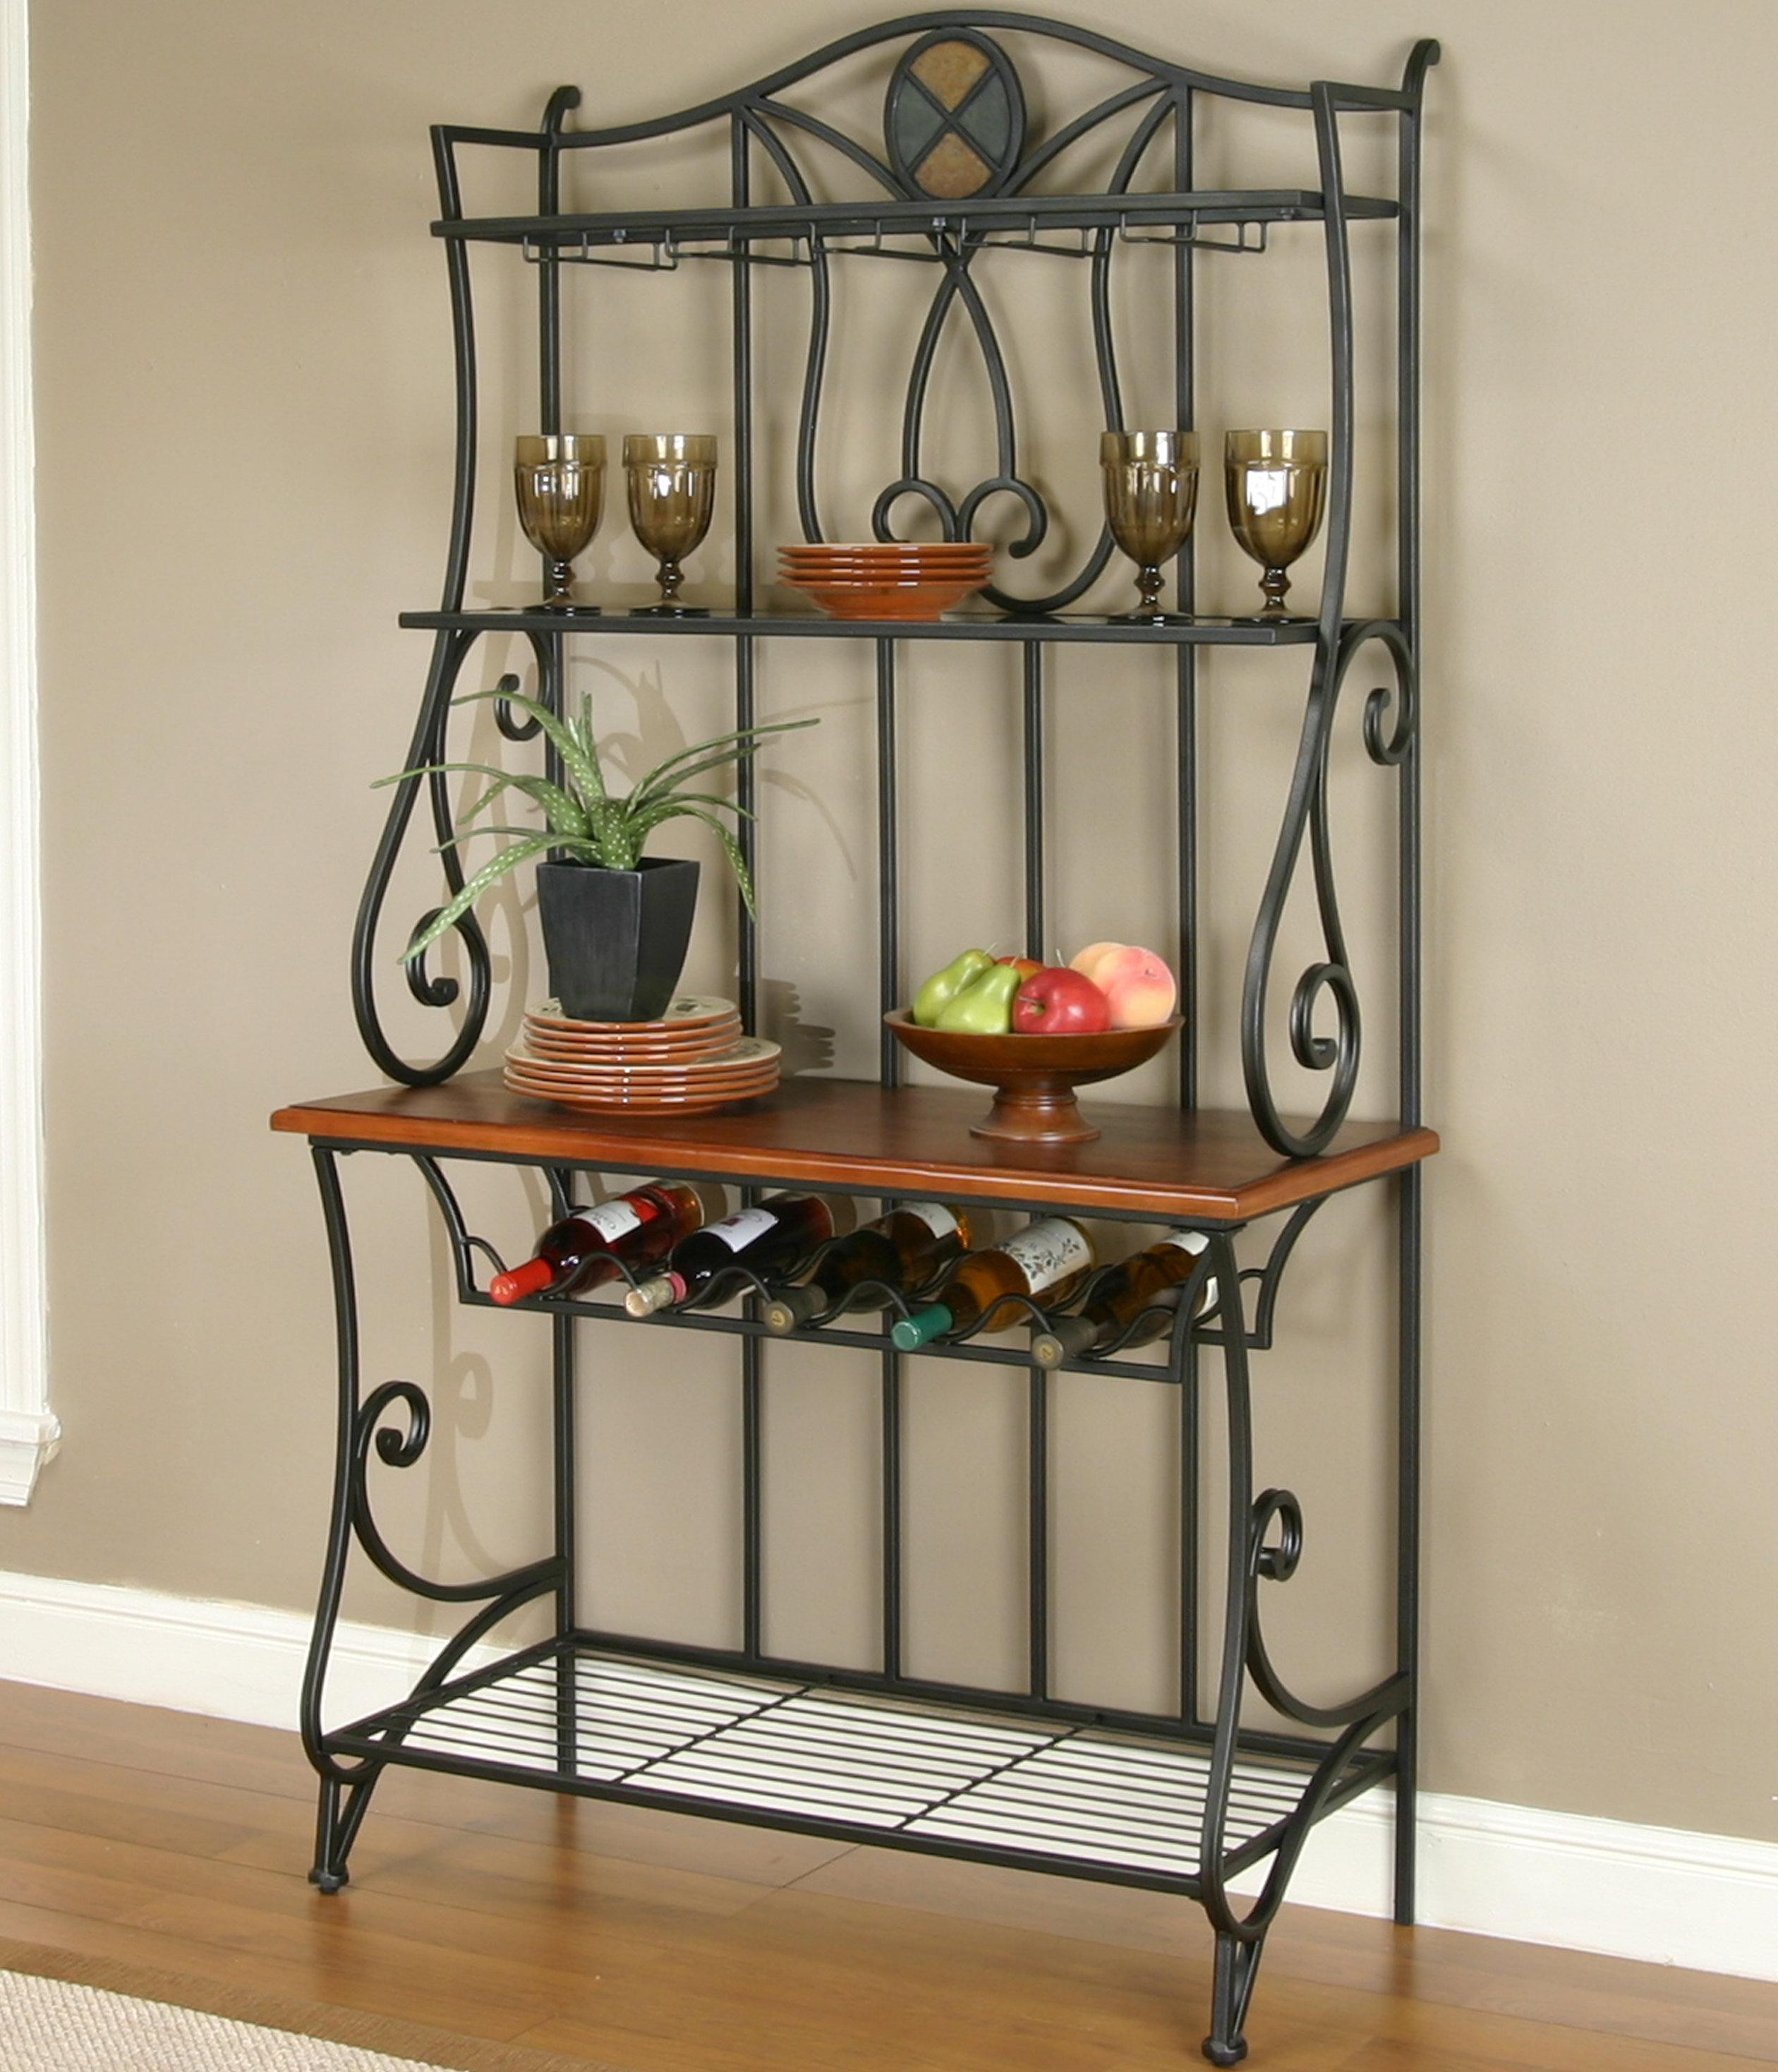 Cramco, Inc Cramco Trading Company   Ravine Dining Room Bakeru0027s Rack |  Westrich Furniture U0026 Appliances | Bakeru0027s Rack